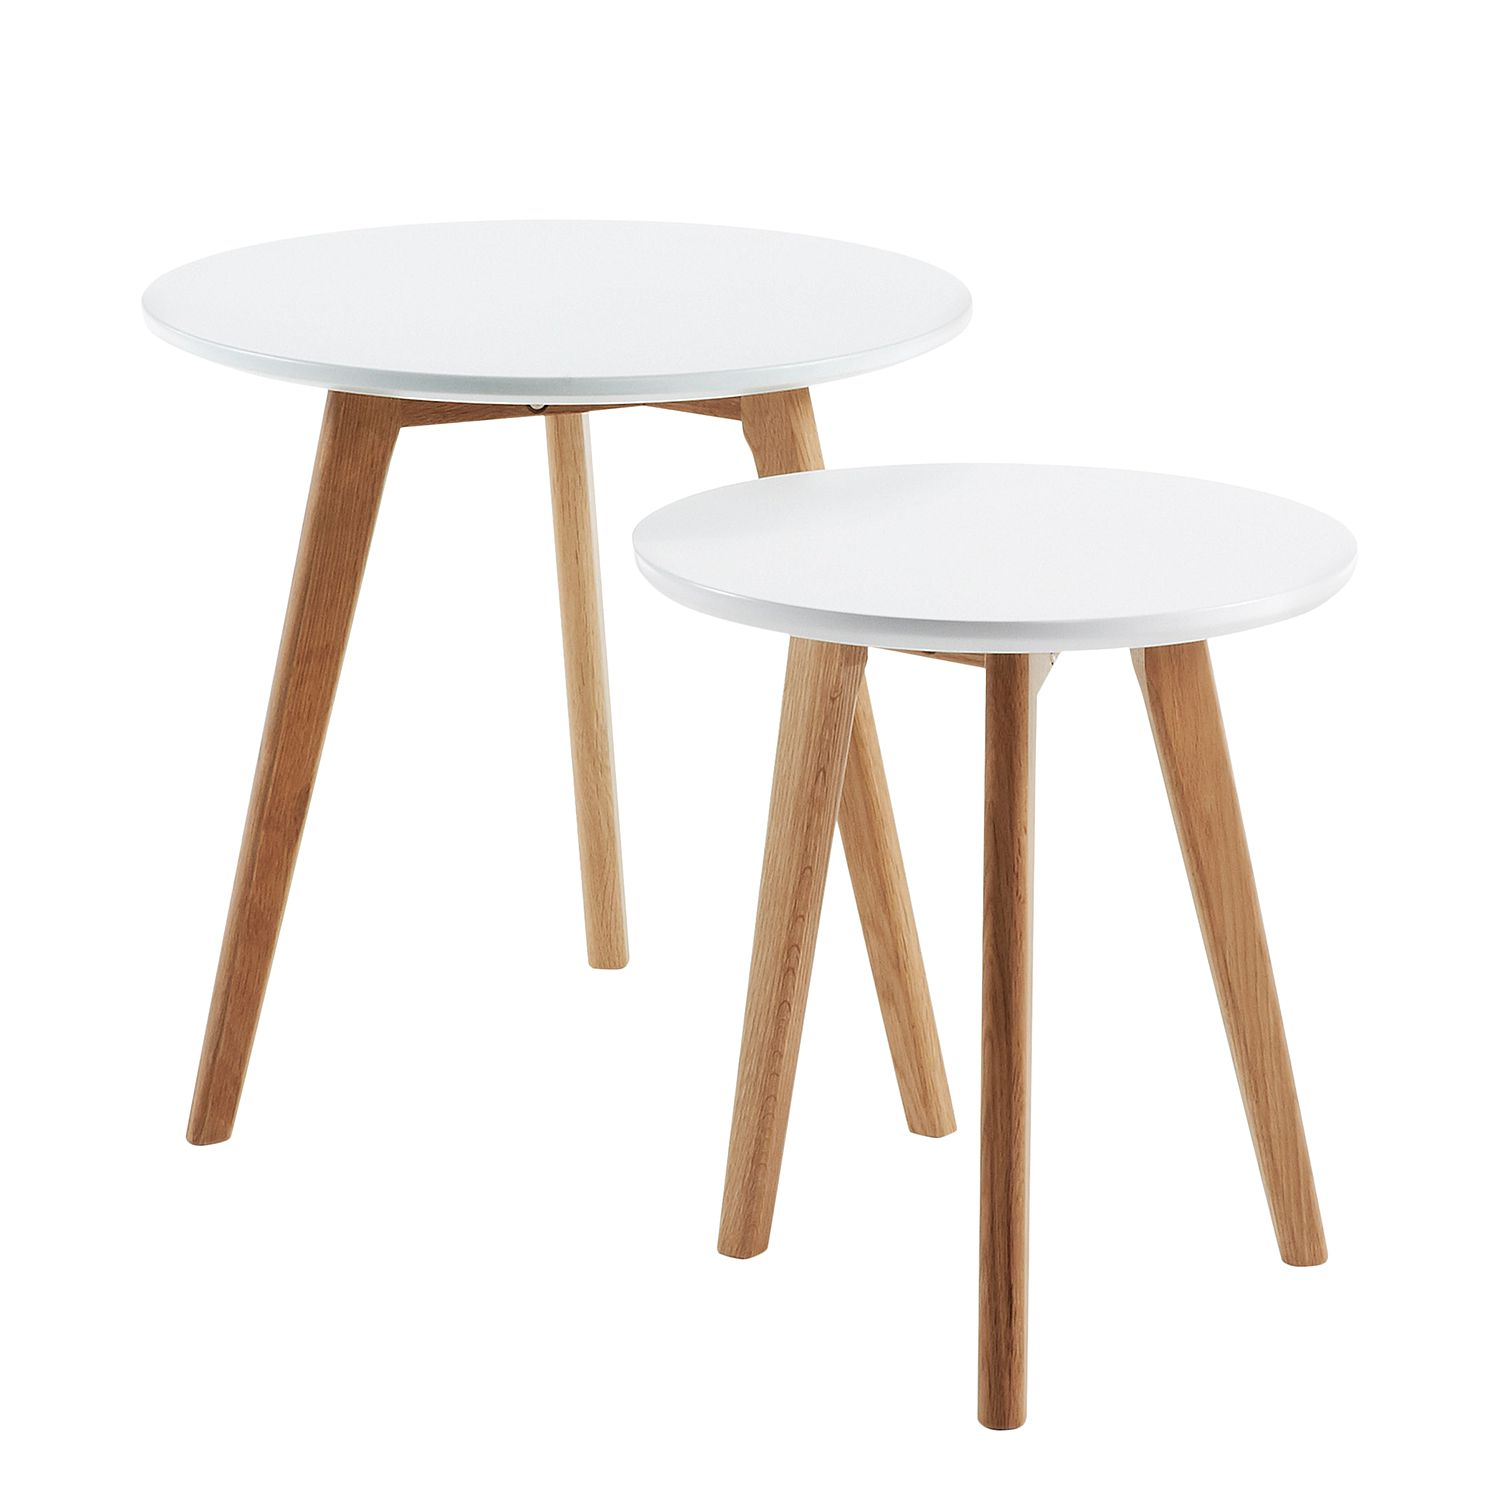 Table d'appoint Ockelbo (lot de 2)